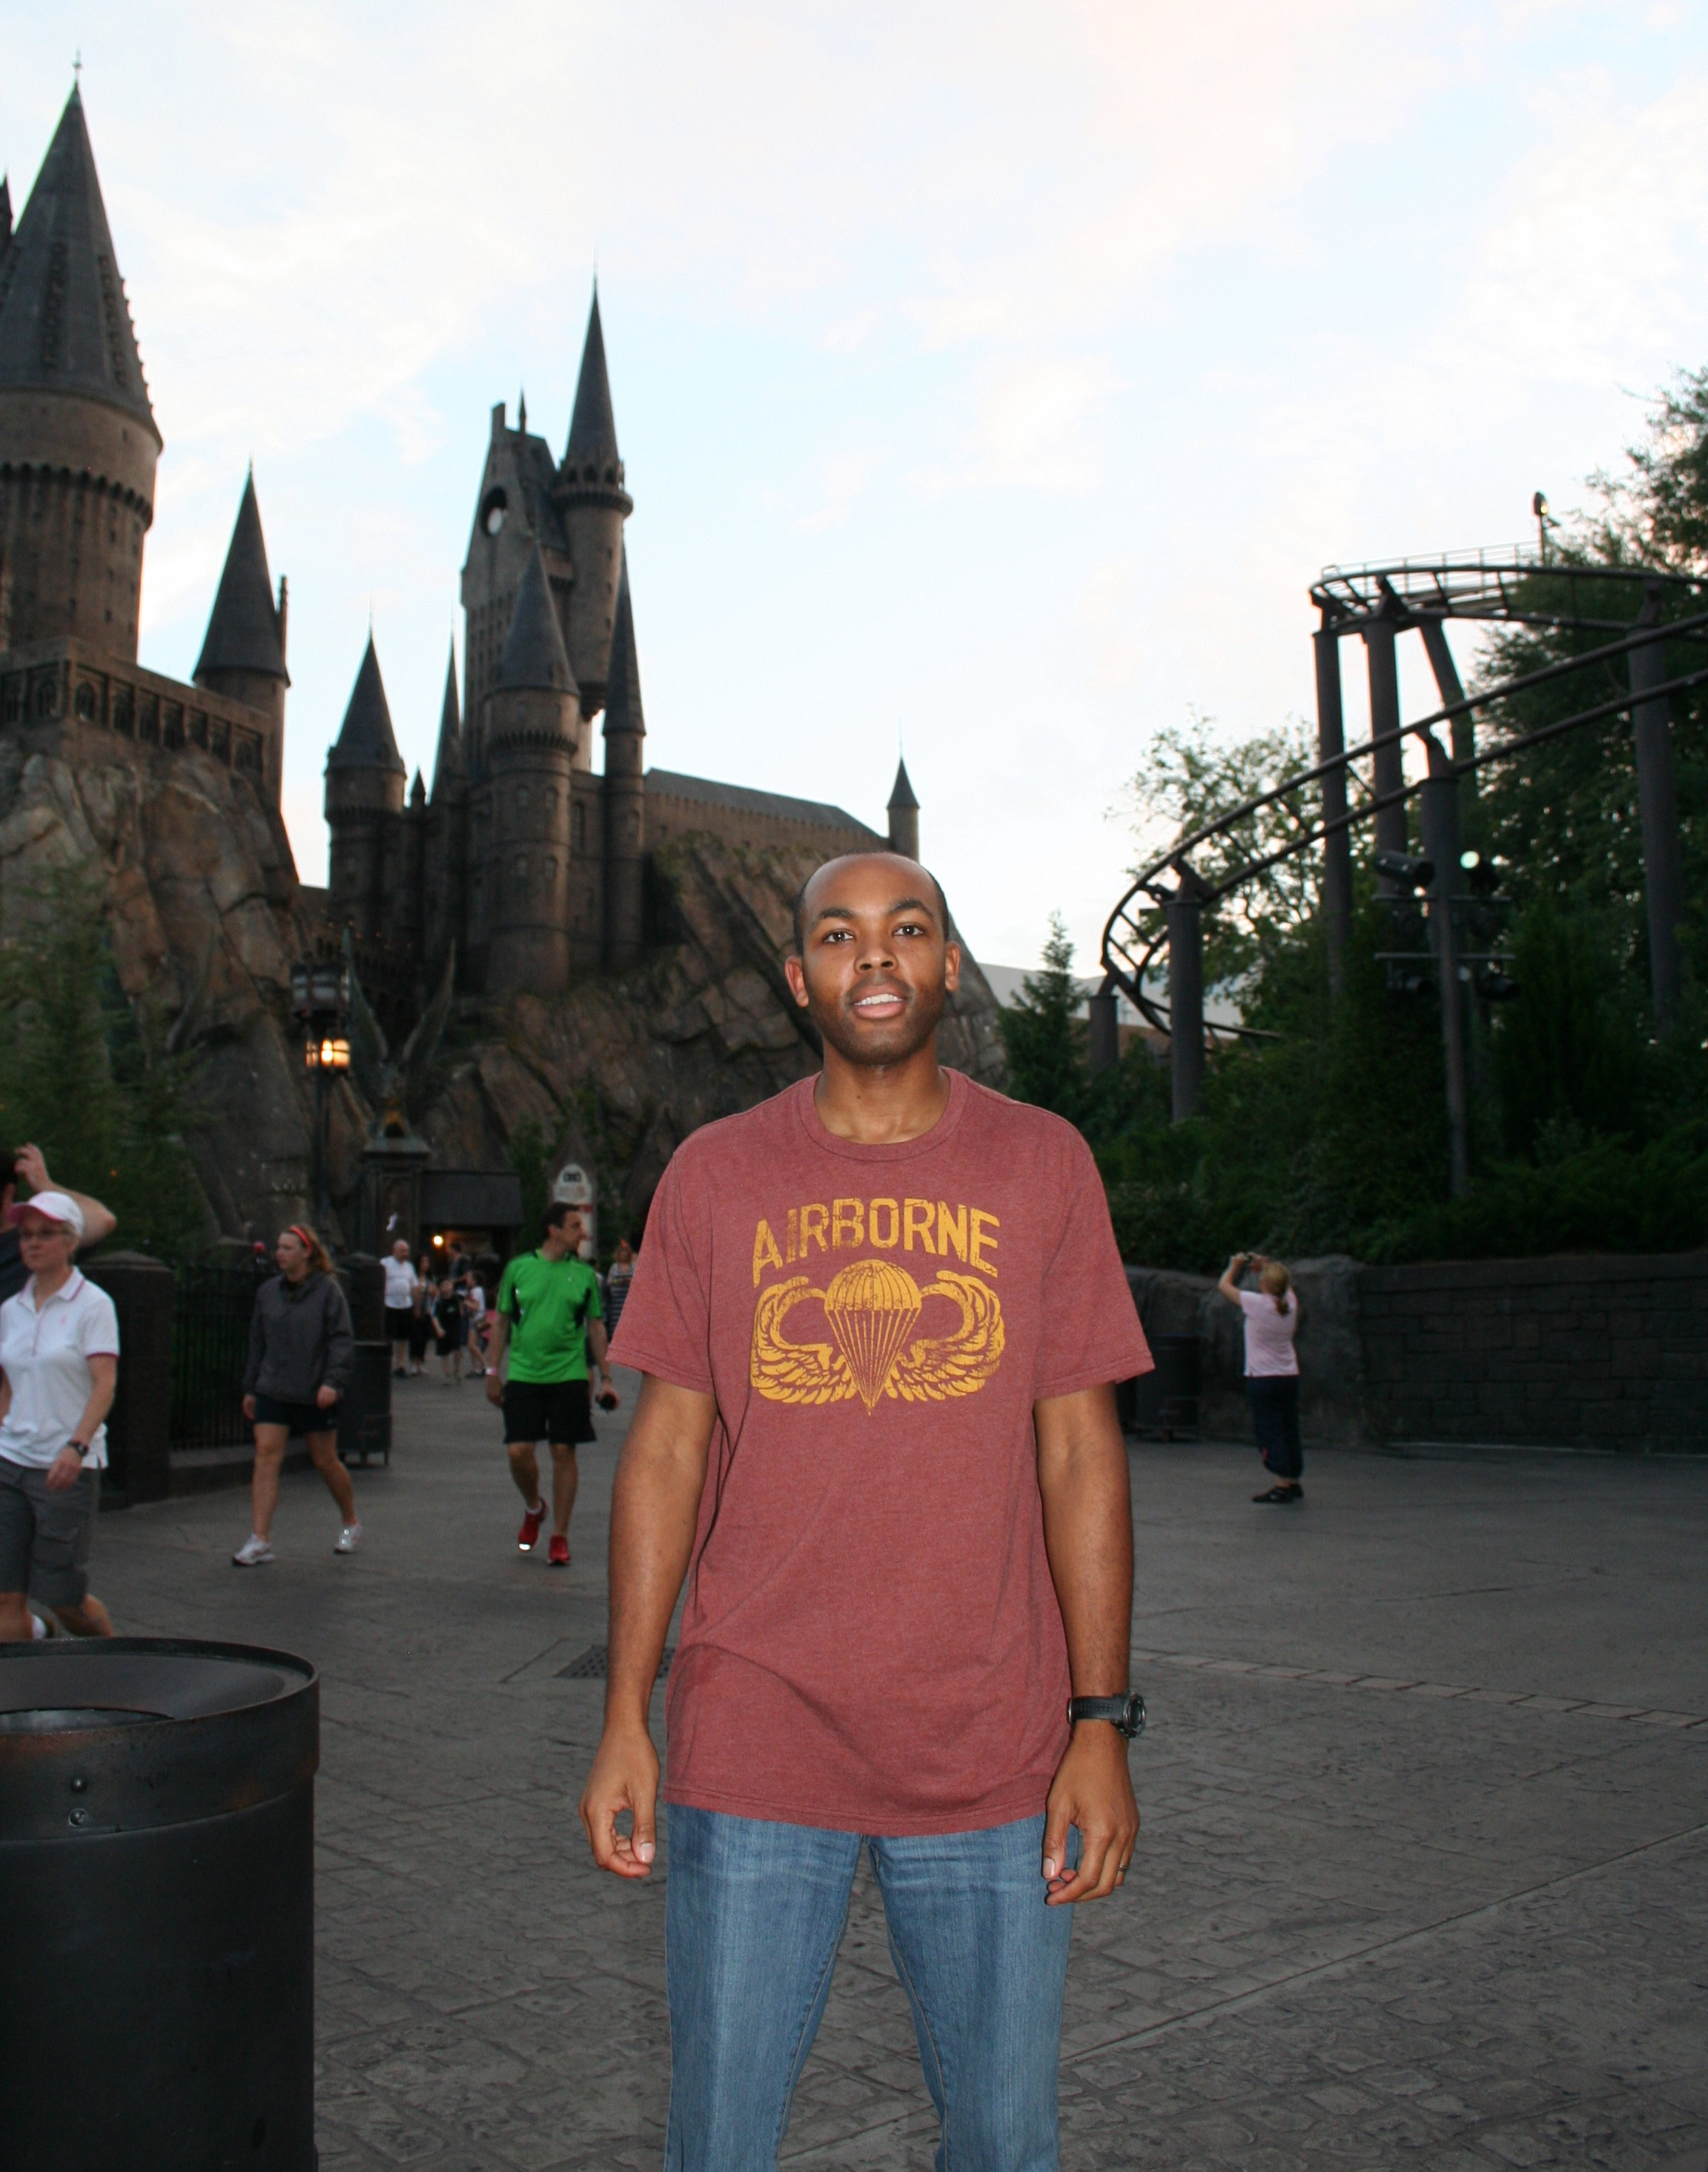 Hogwarts & Flight of the Hippogriff - Wizarding World of Harry Potter